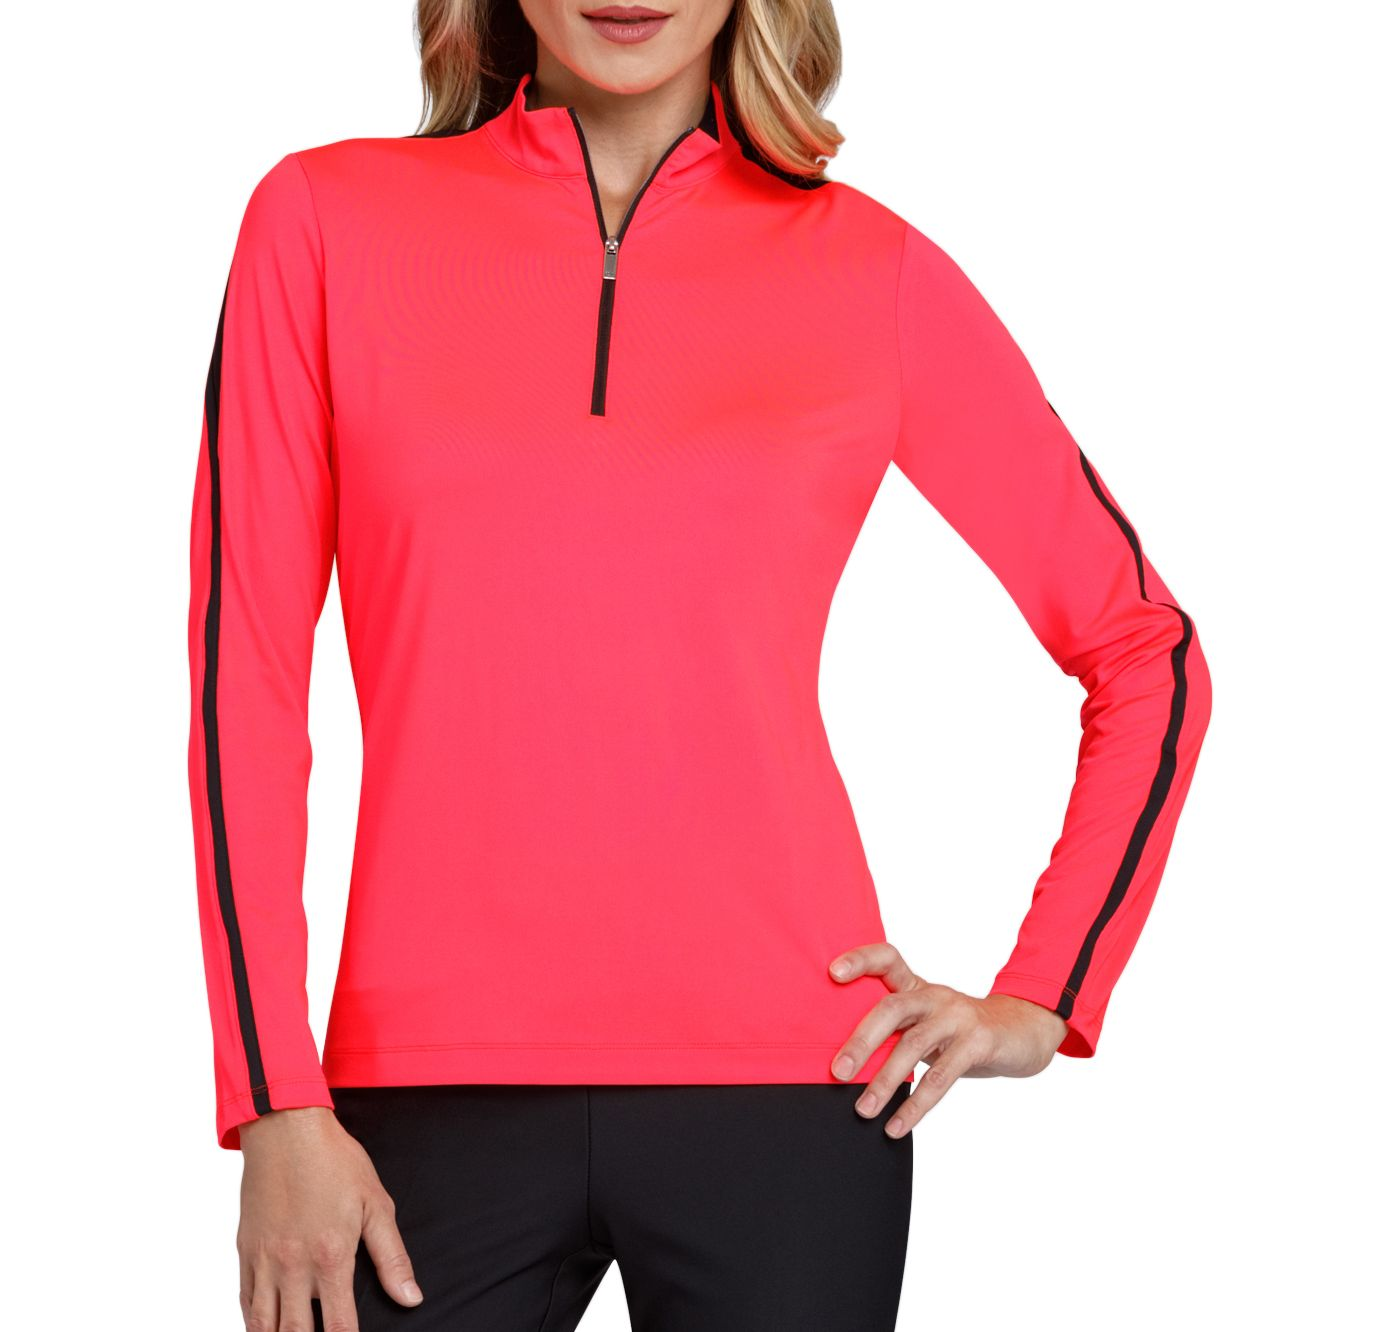 Tail Women's Long Sleeve Mock Neck Golf Top